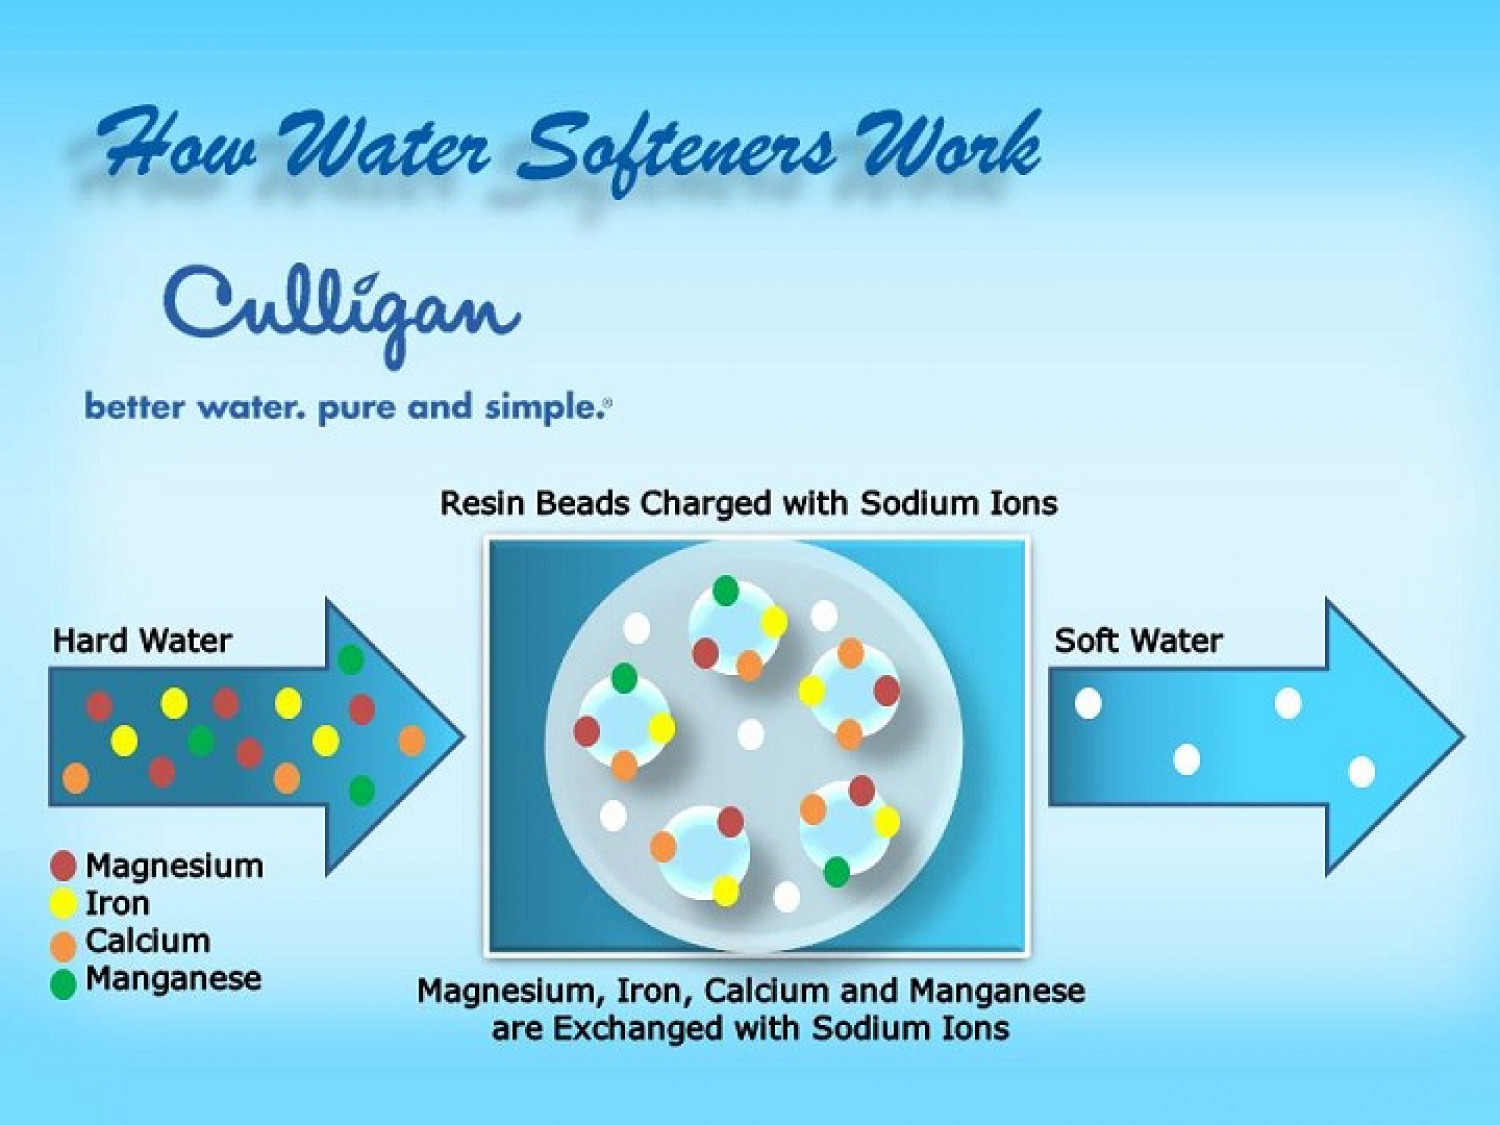 How Culligan Water Softeners Work Infographic